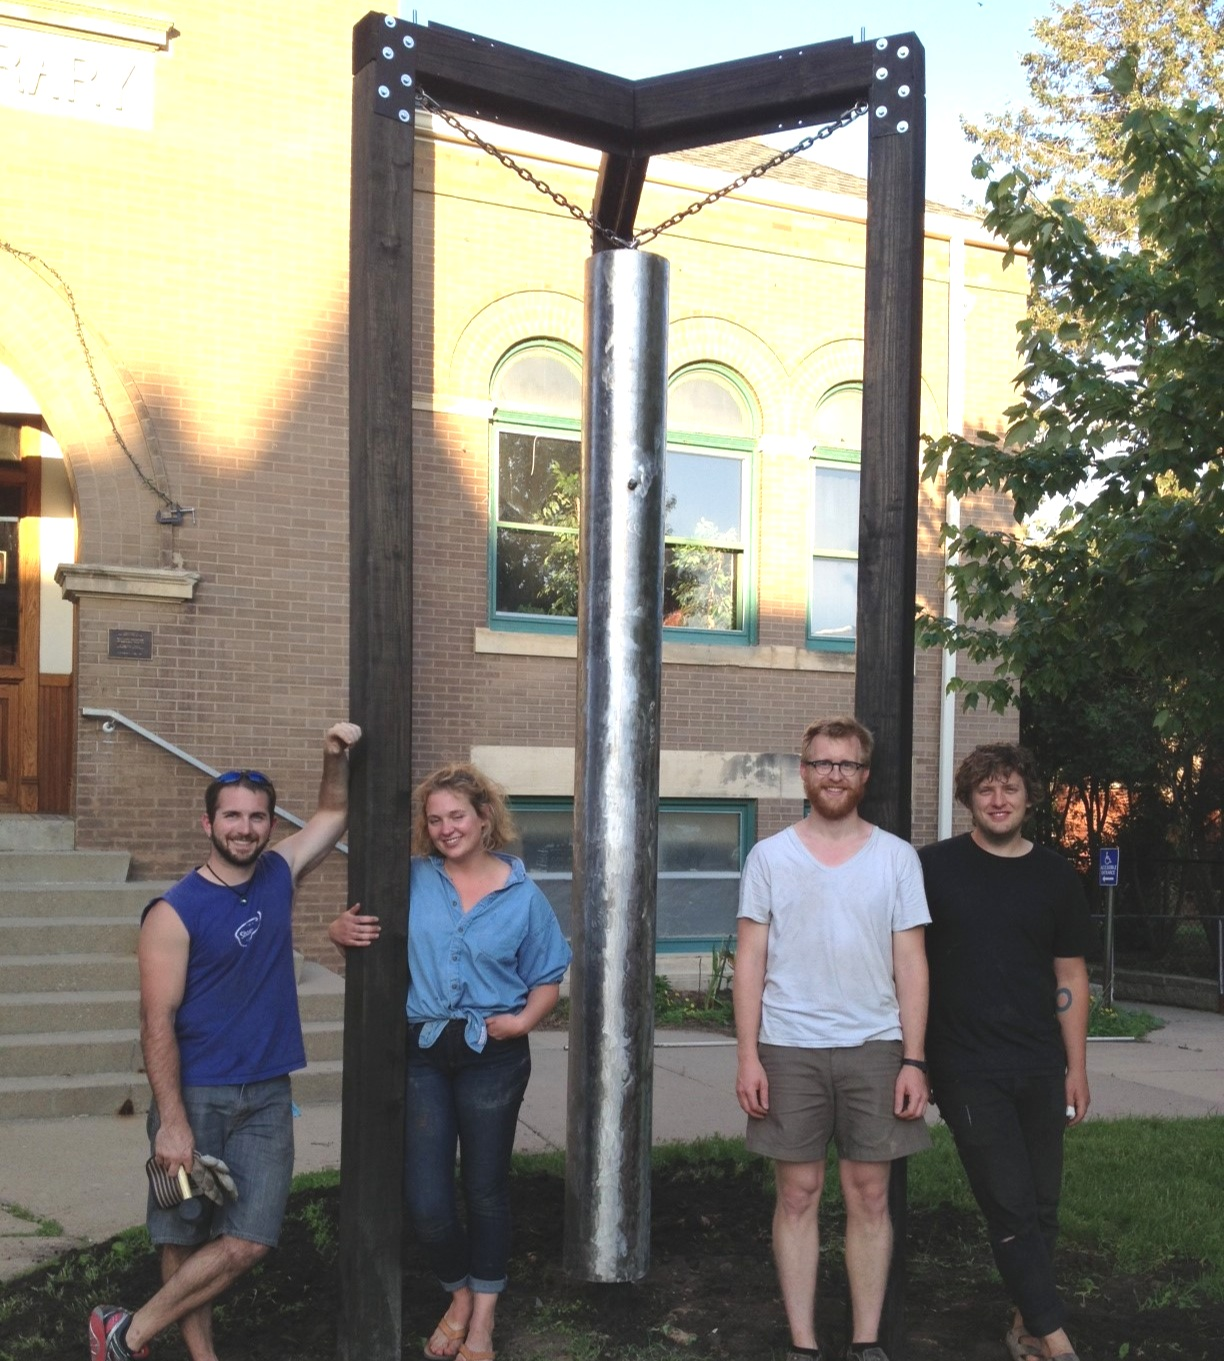 The Chime 2013 - Sarah Coote, Alex Hansen, Joe Lacina, and Tony Zappa designed and installed an interactive public sculpture in downtown Grinnell.